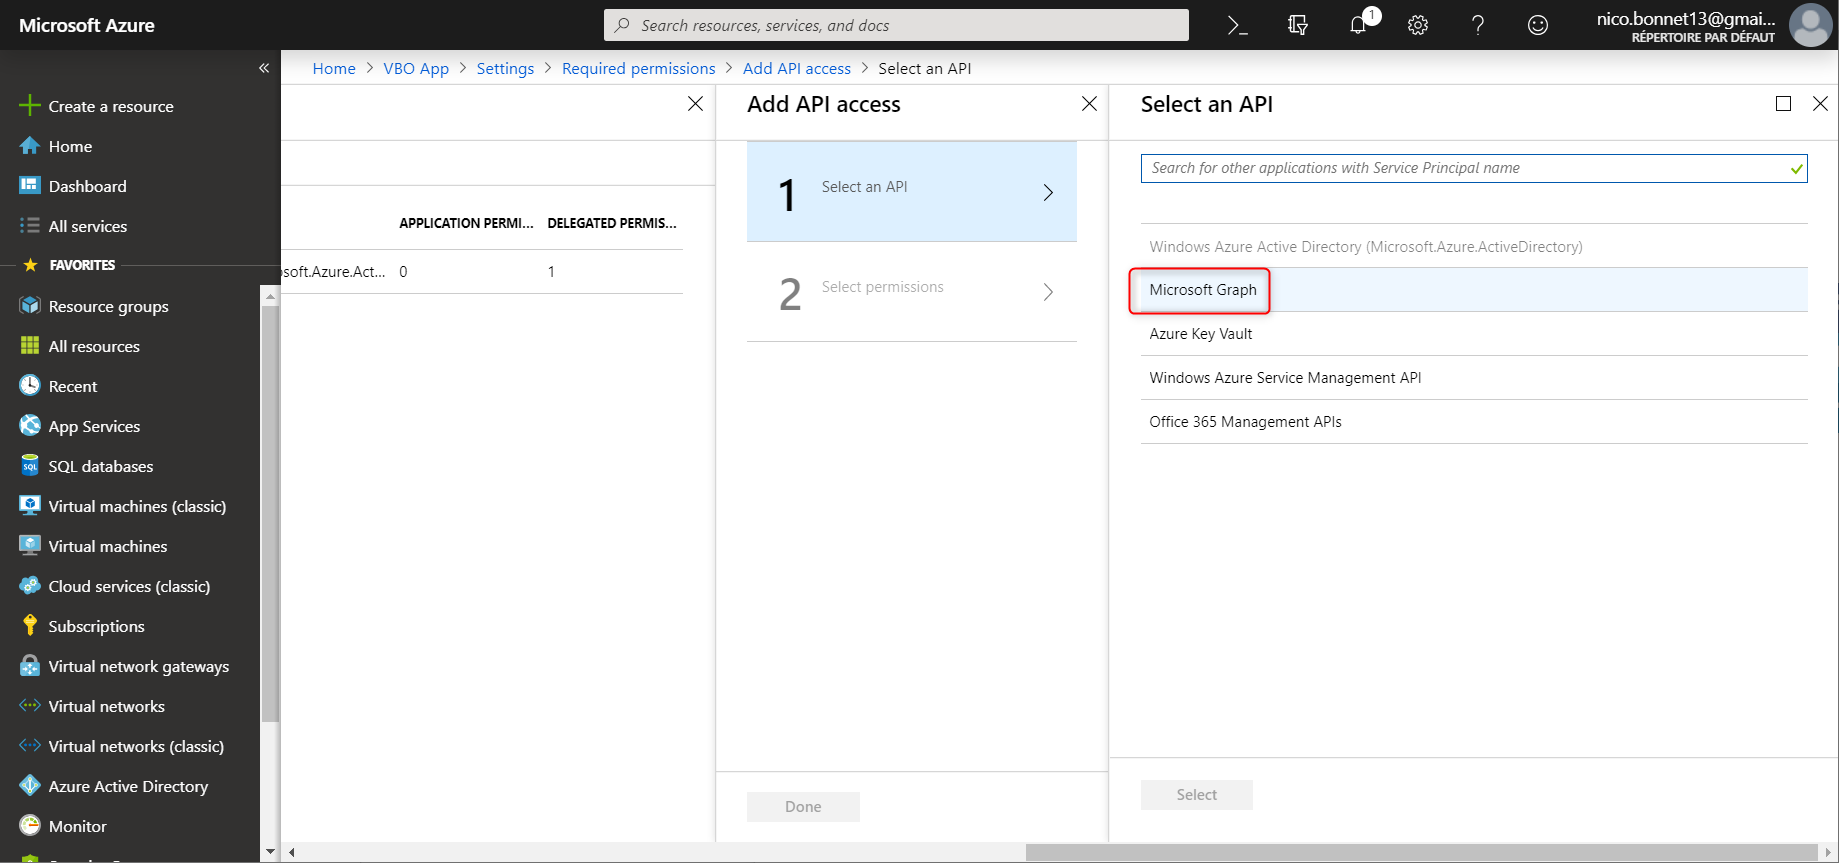 Select API for Veeam APP Modern Authentification on VBO 3